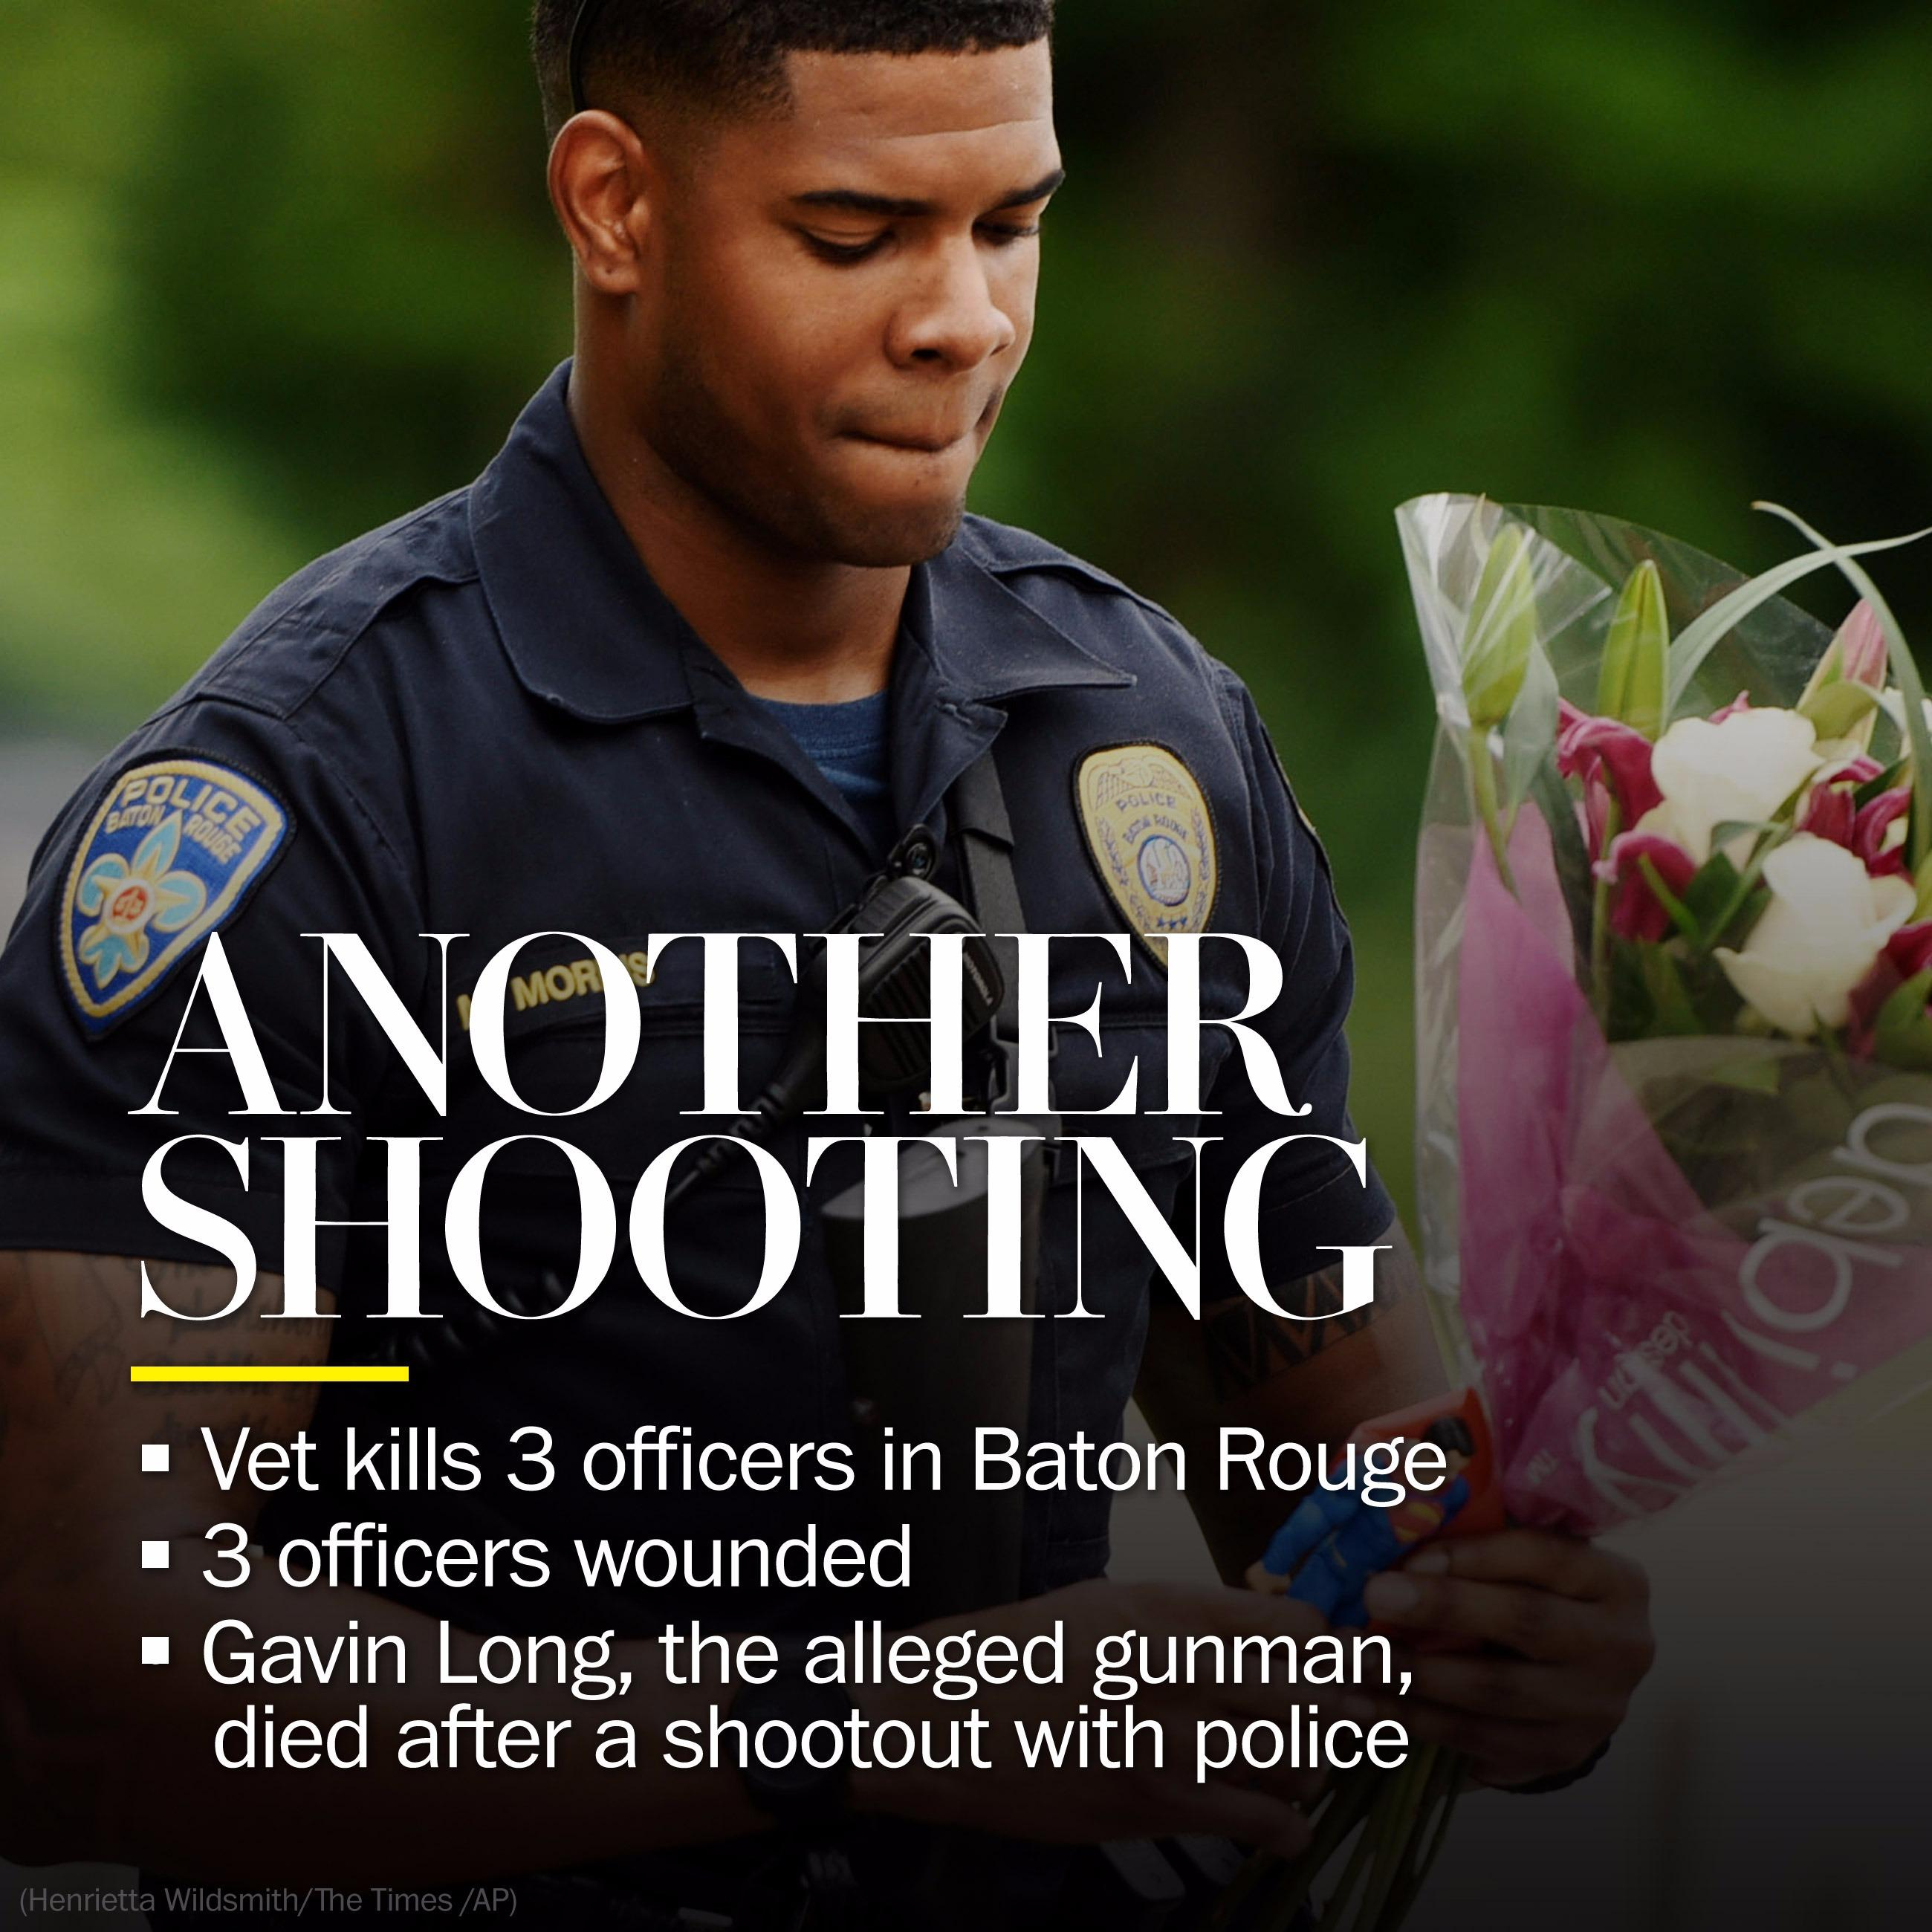 3 police officers killed, 3 wounded in Baton Rouge